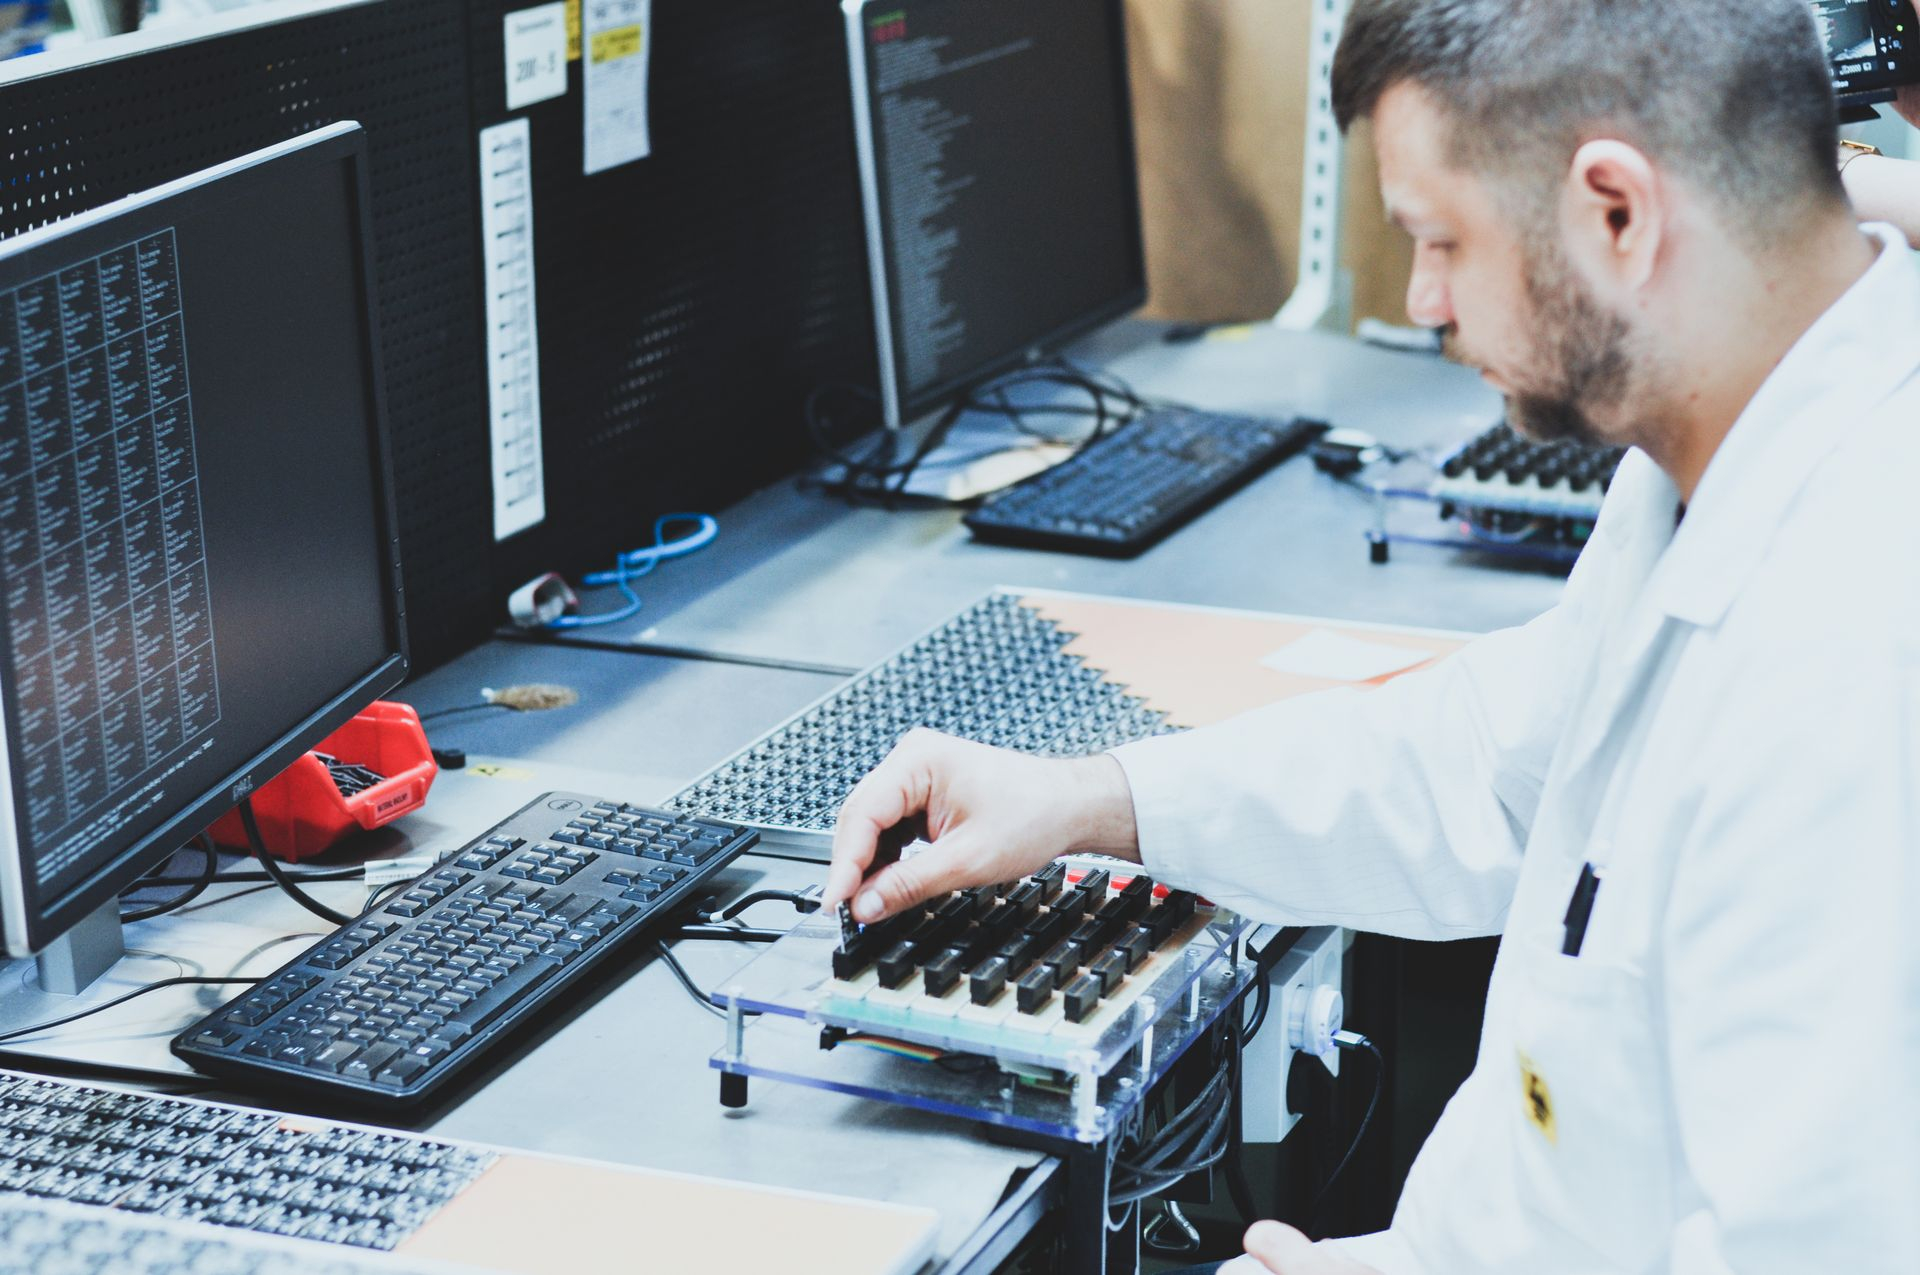 test-leader-during-his-work-on-rf-project-as-a-part-of-electronics-manufacturing-services